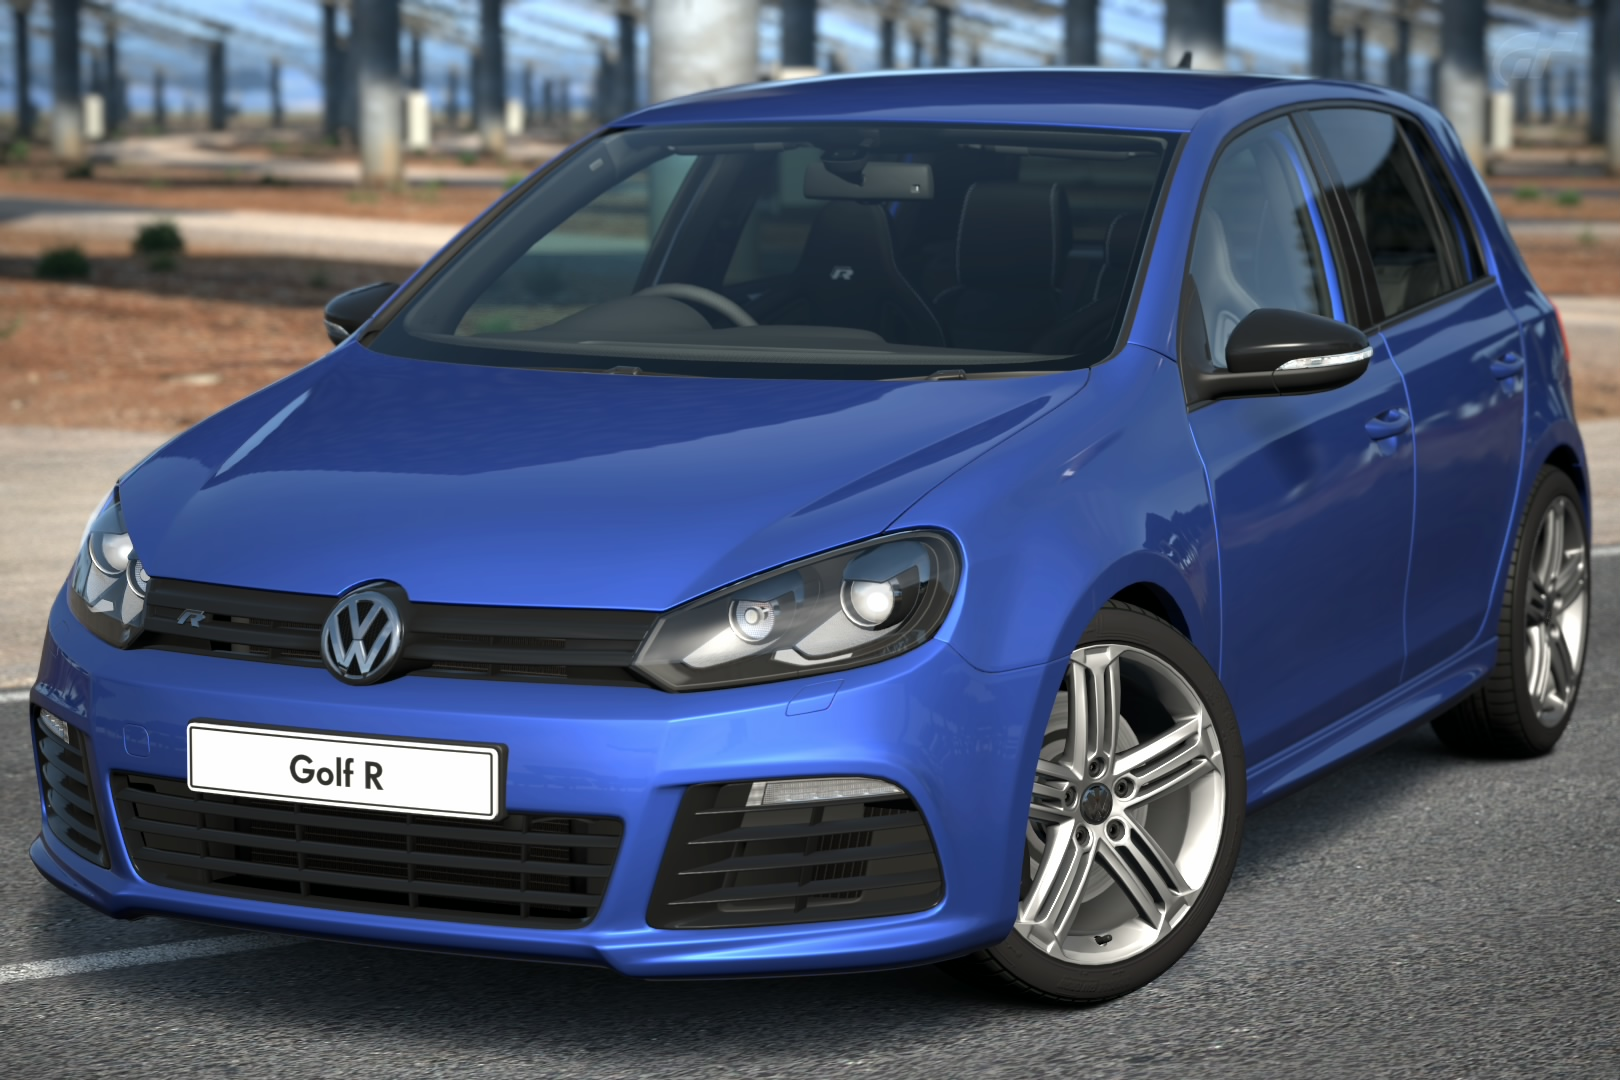 Volkswagen Golf VI R 10  Gran Turismo Wiki  FANDOM powered by Wikia